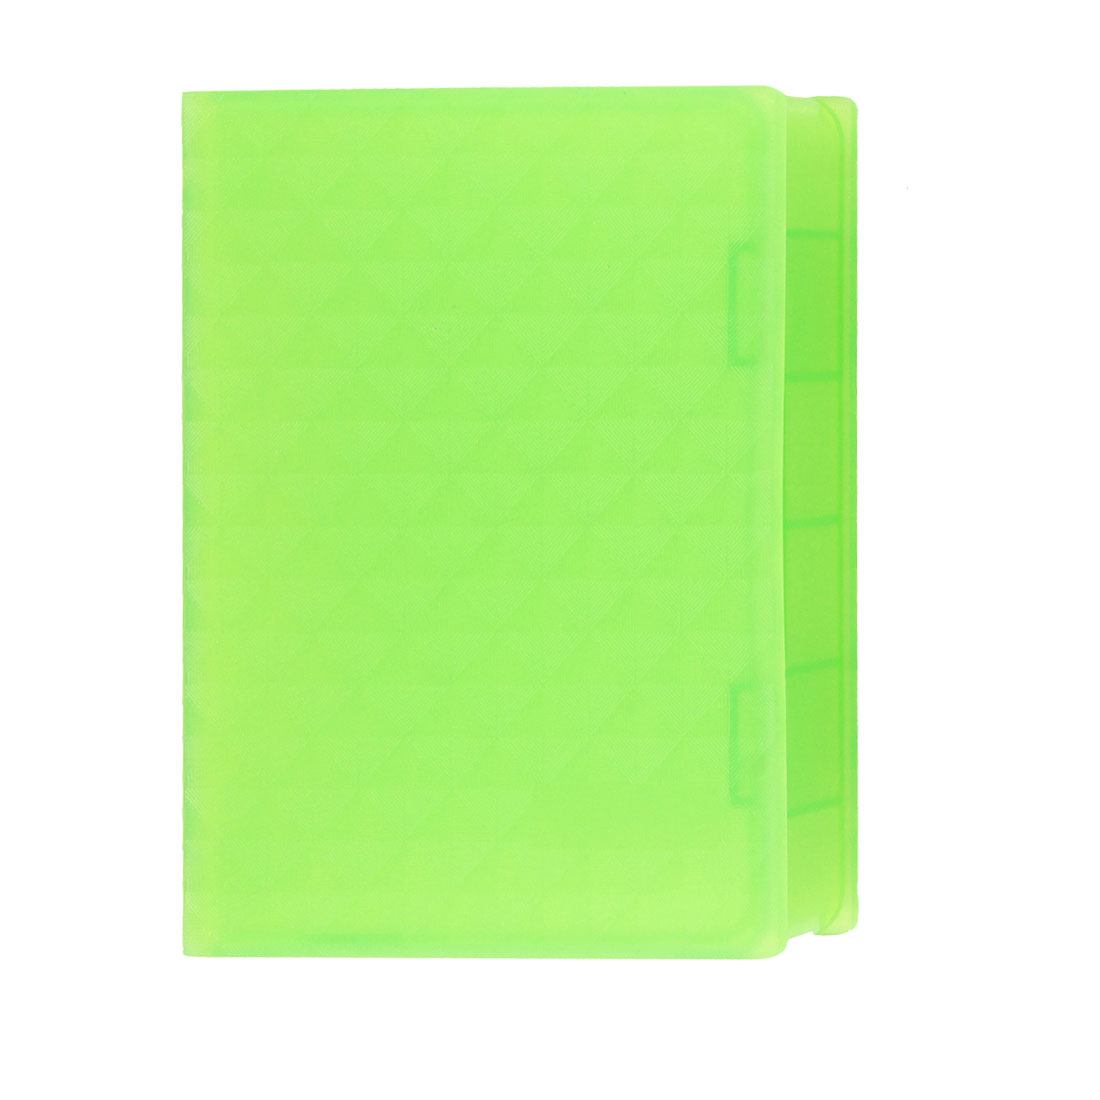 "Clear Green Drive Store Tank Plastic Case for 2.5"" Hard Disk"